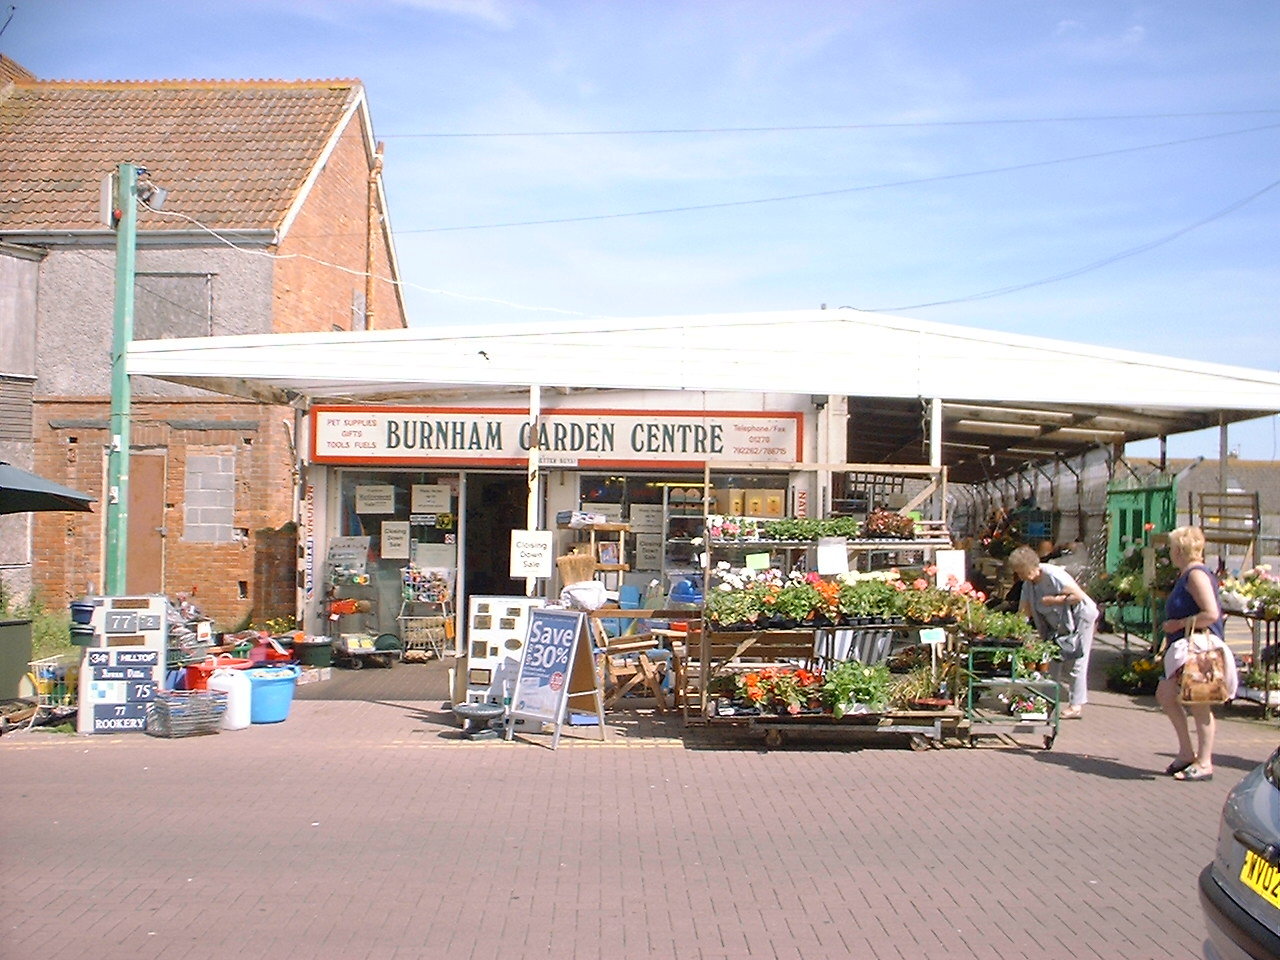 Burnham Garden Centre outside